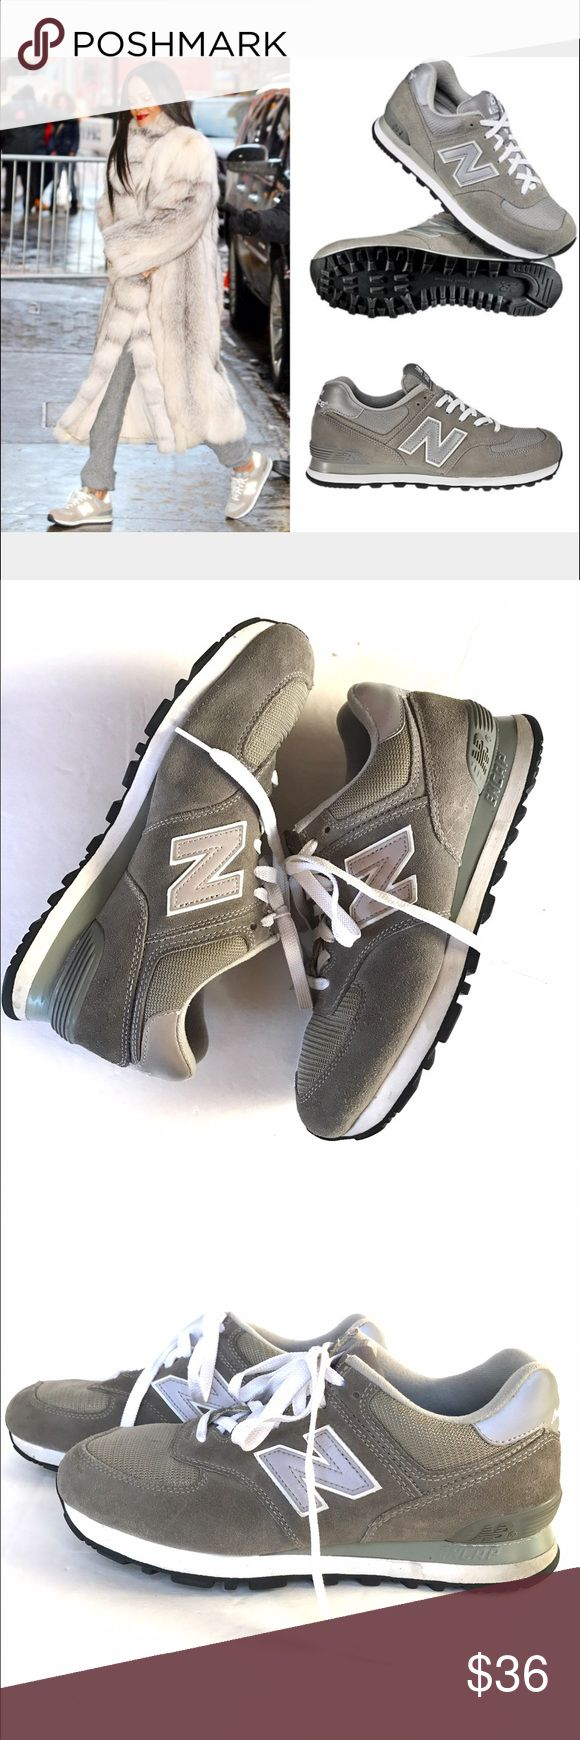 New Balance 574 size 8.5 Very good condition Gray New Balance 574 tennis shoes size 8.5. Super cute and so comfortable. New Balance Shoes Athletic Shoes